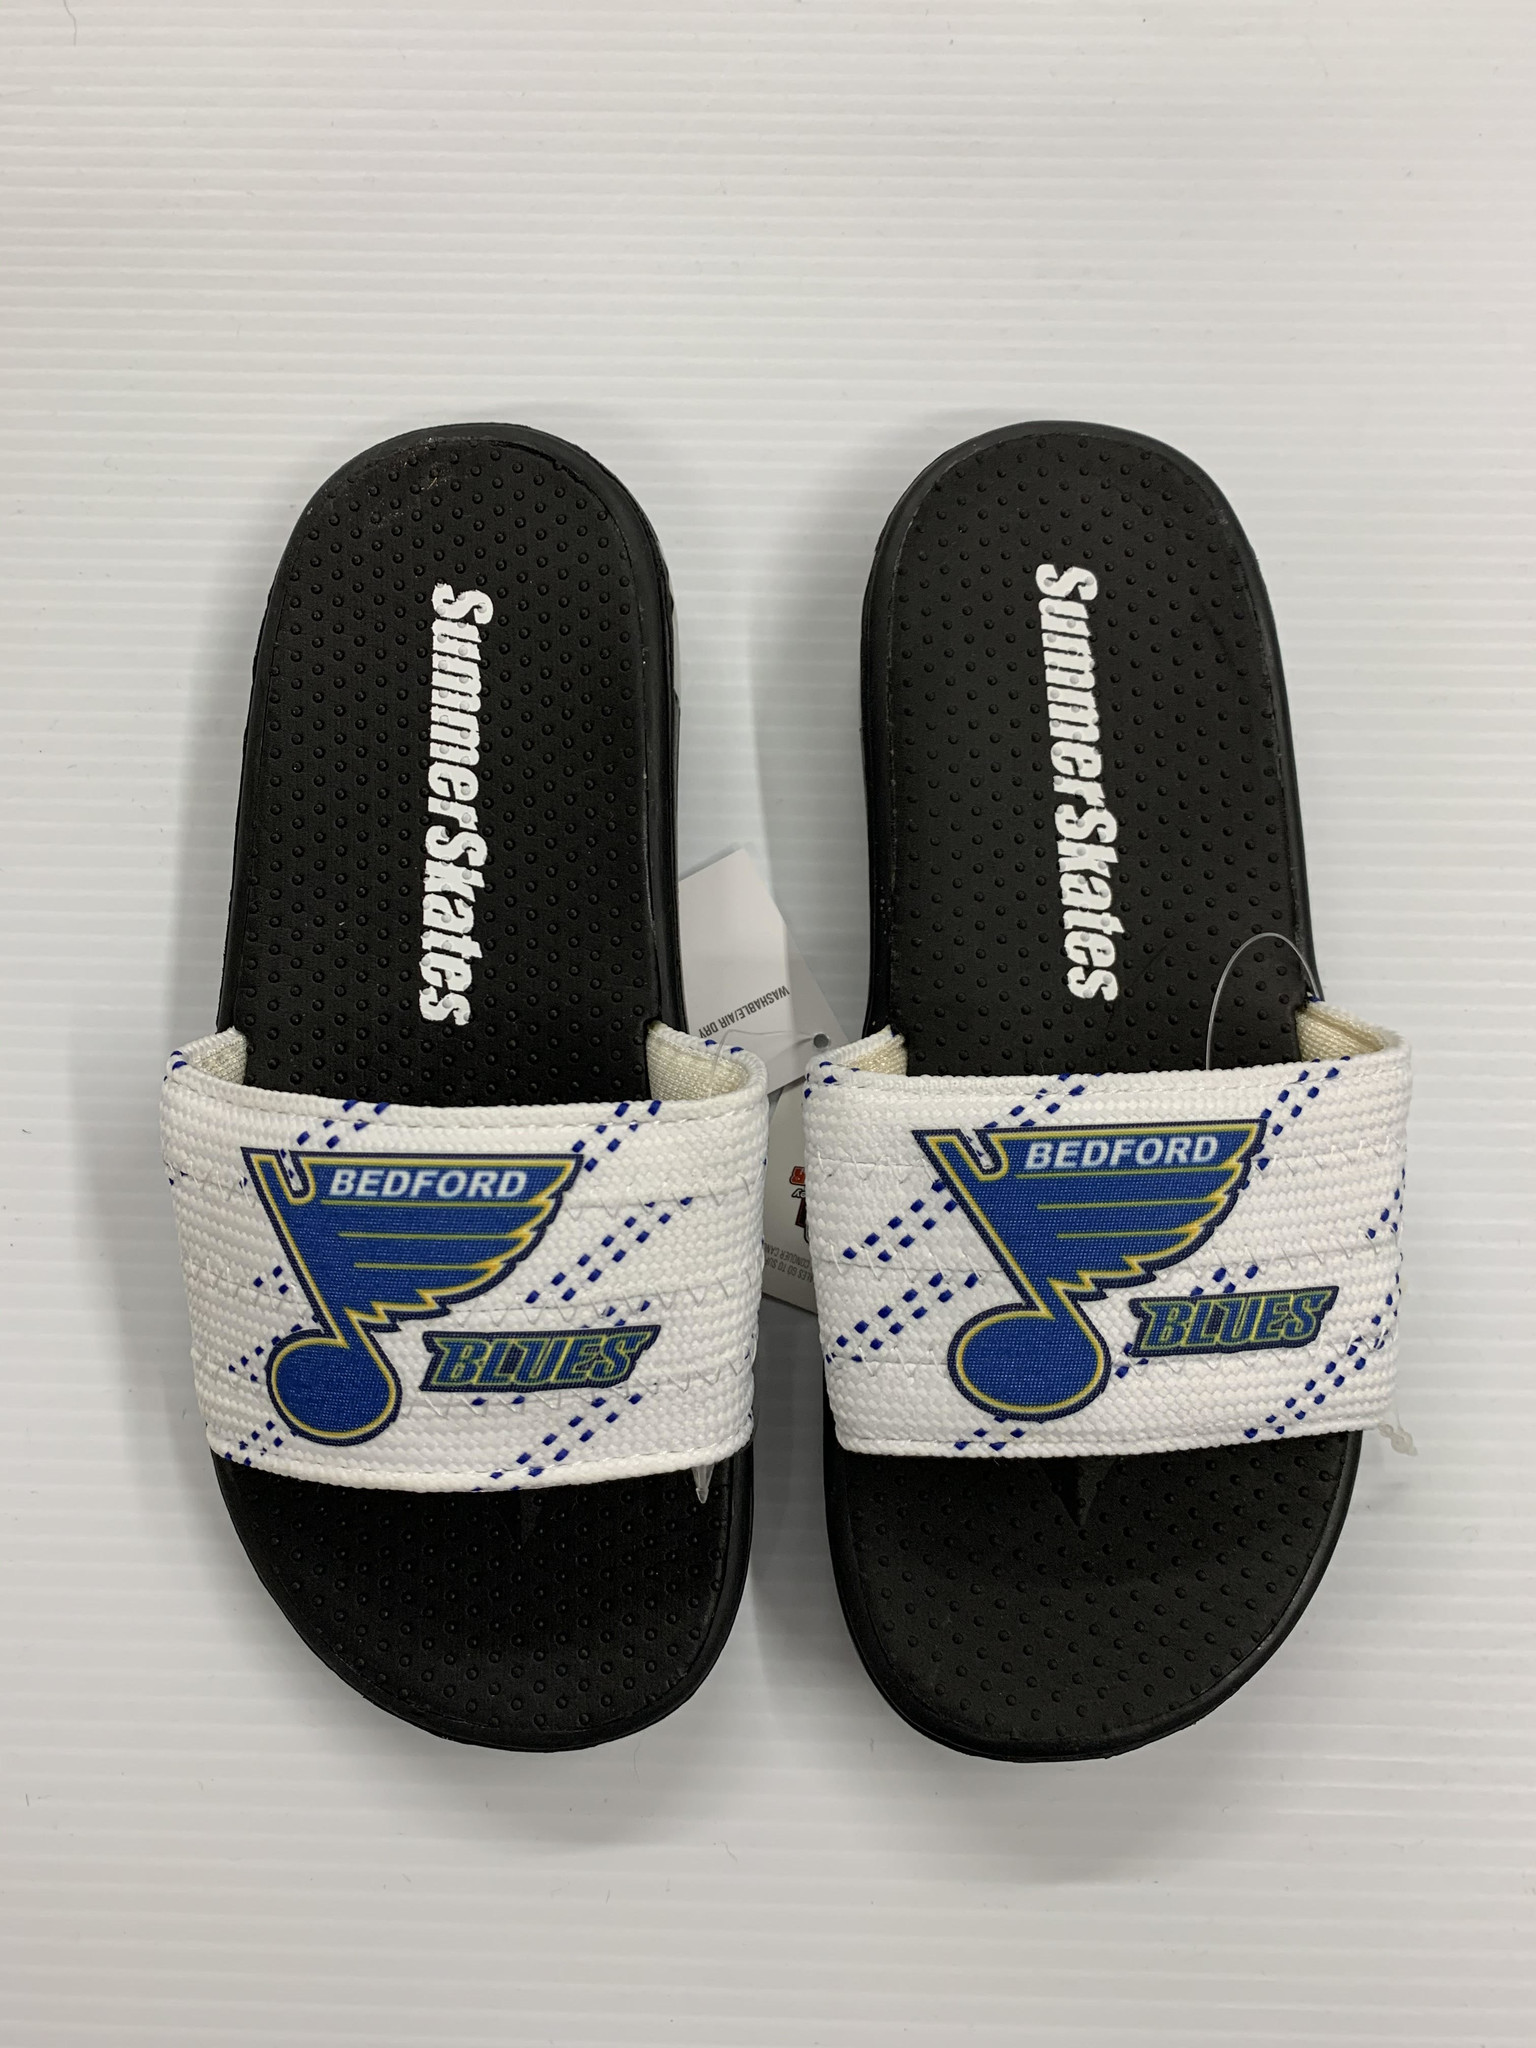 SUMMERSKATES SUMMER SKATES - Bedford Blues & Sackville Flyers